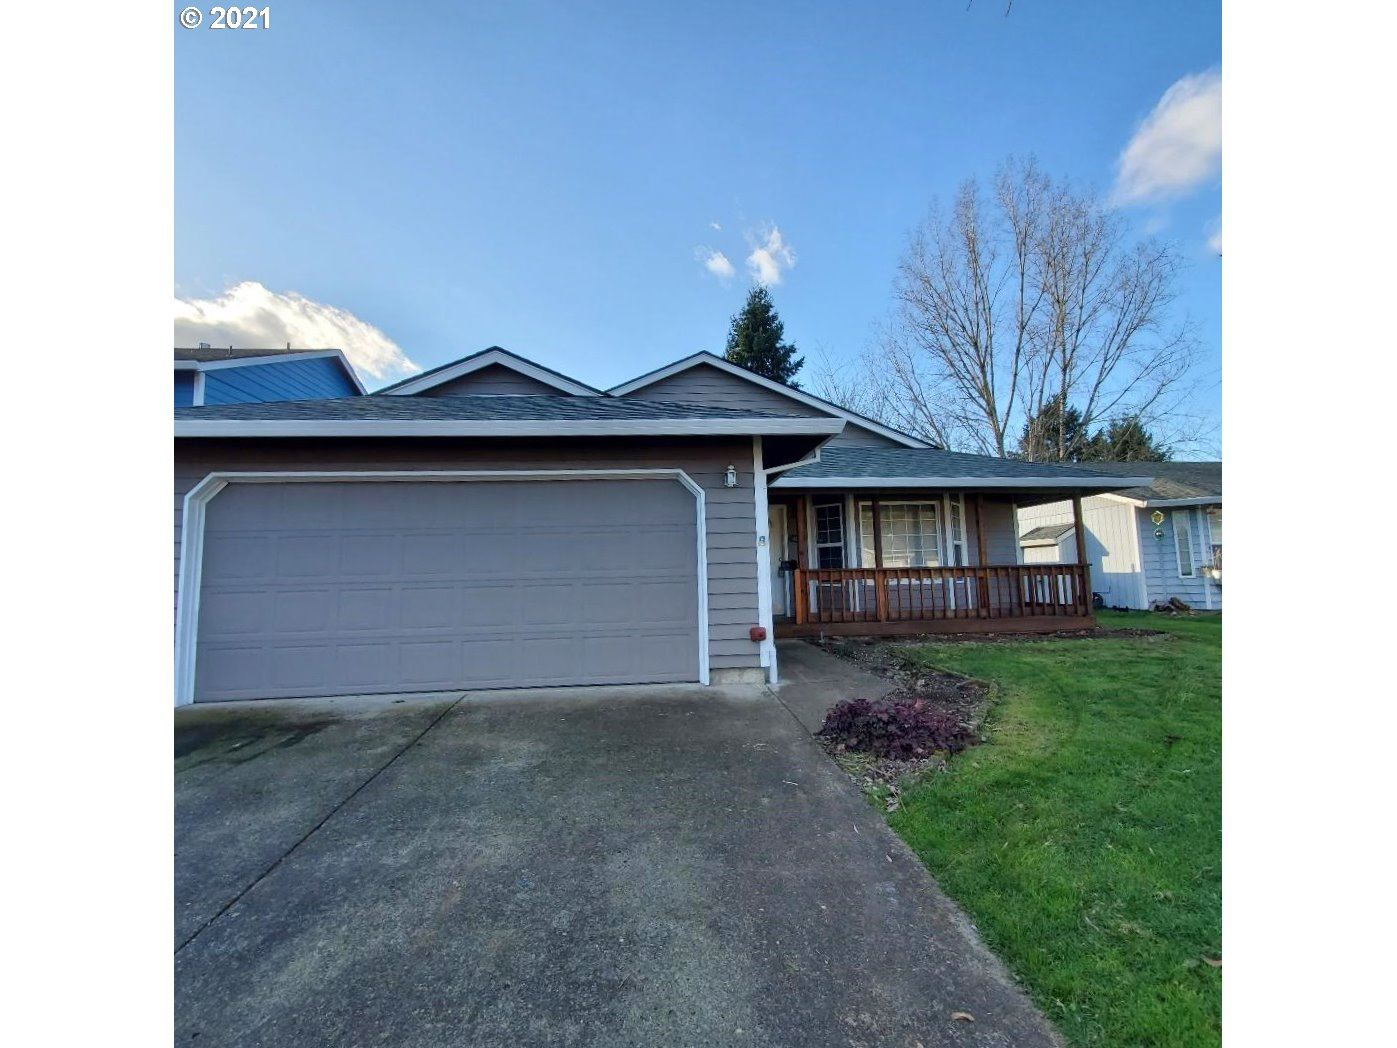 Photo for 4610 NE 126TH AVE, Vancouver, WA 98682 (MLS # 21476944)